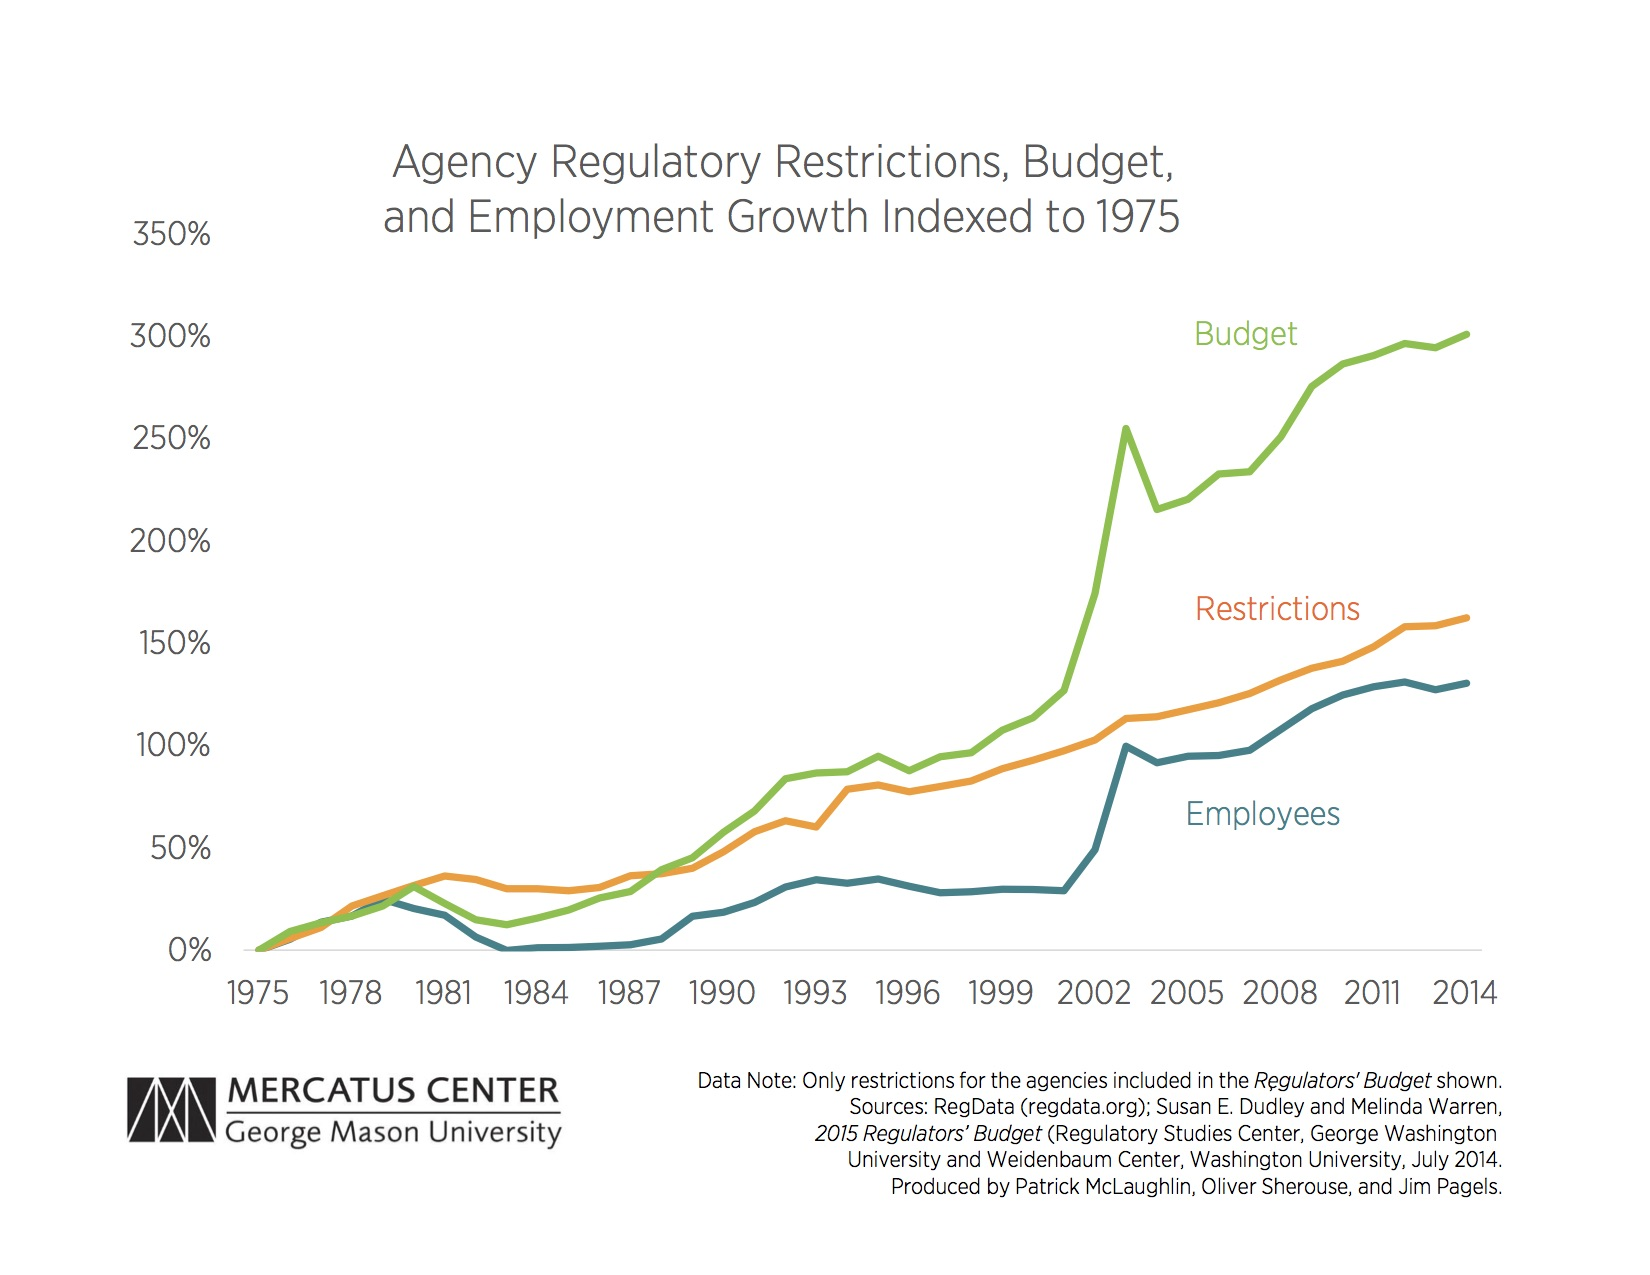 Agency Regulatory Restrictions, Budget, and Employment Growth Indexed to 1975